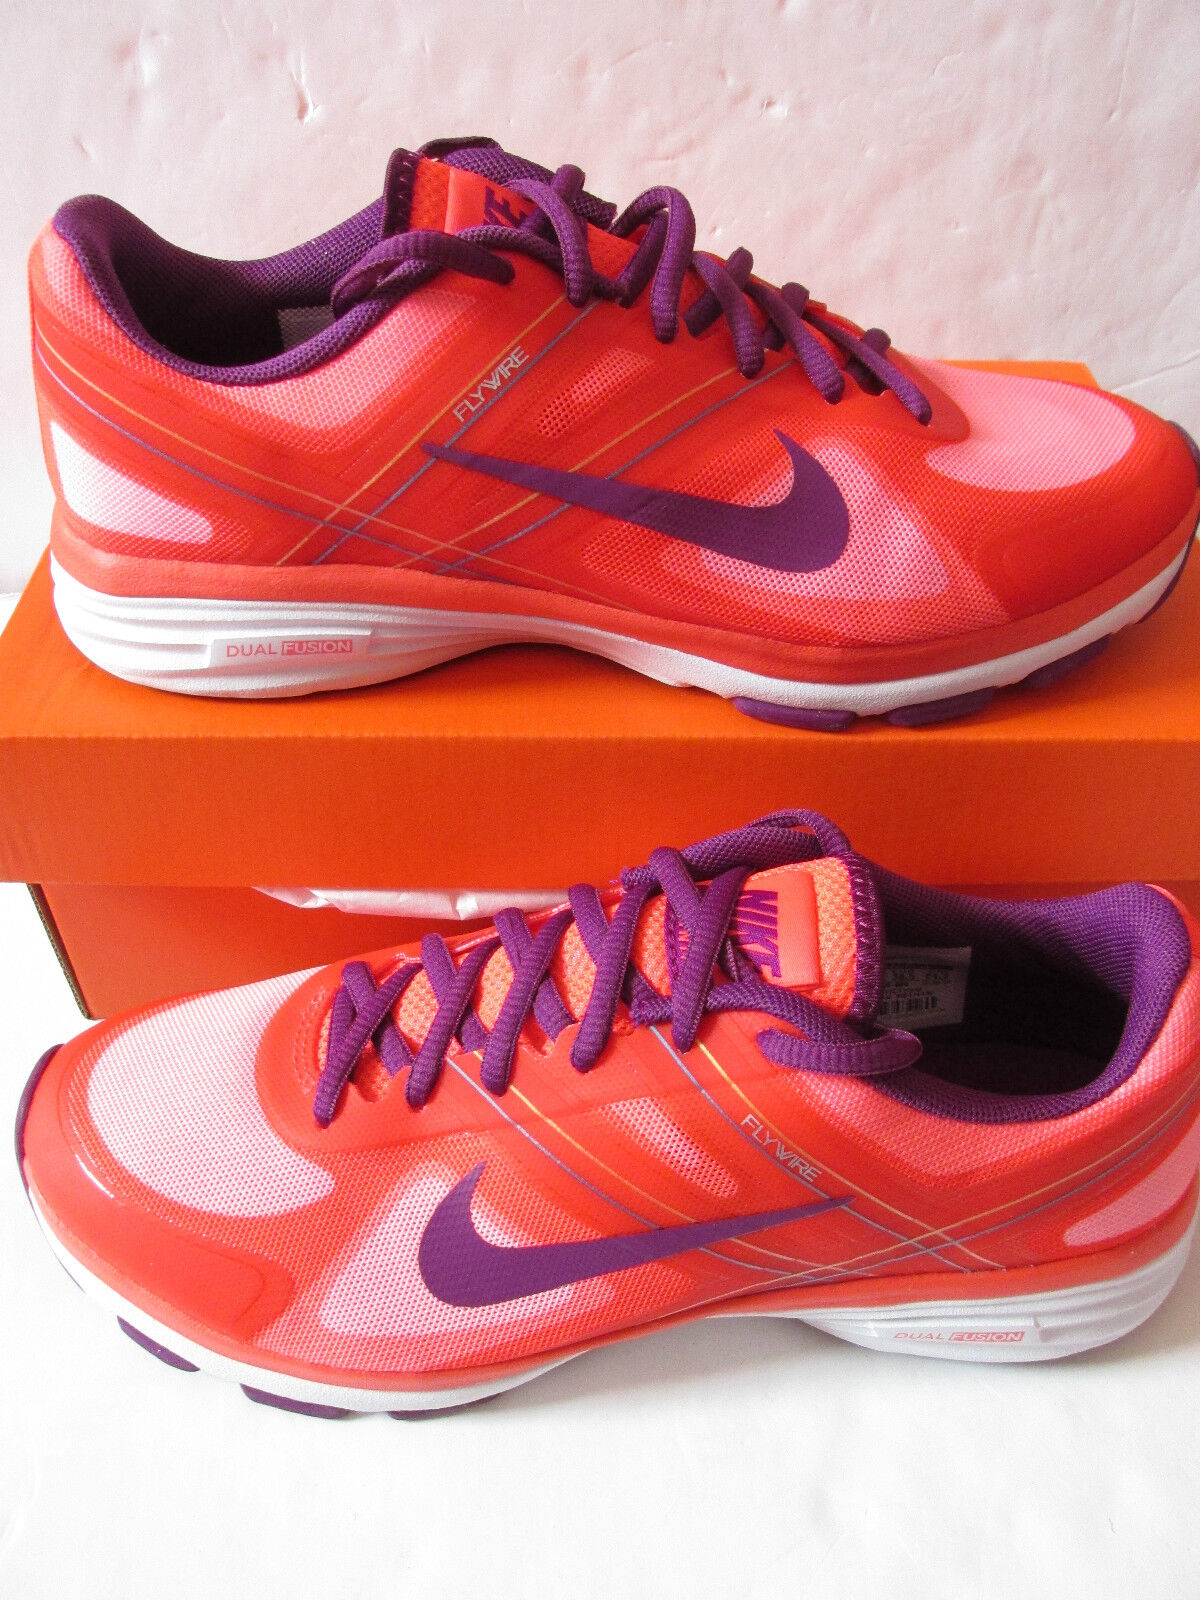 nike dual fusion TR 631459 2 womens running trainers 631459 TR 600 sneakers shoes f89c4c